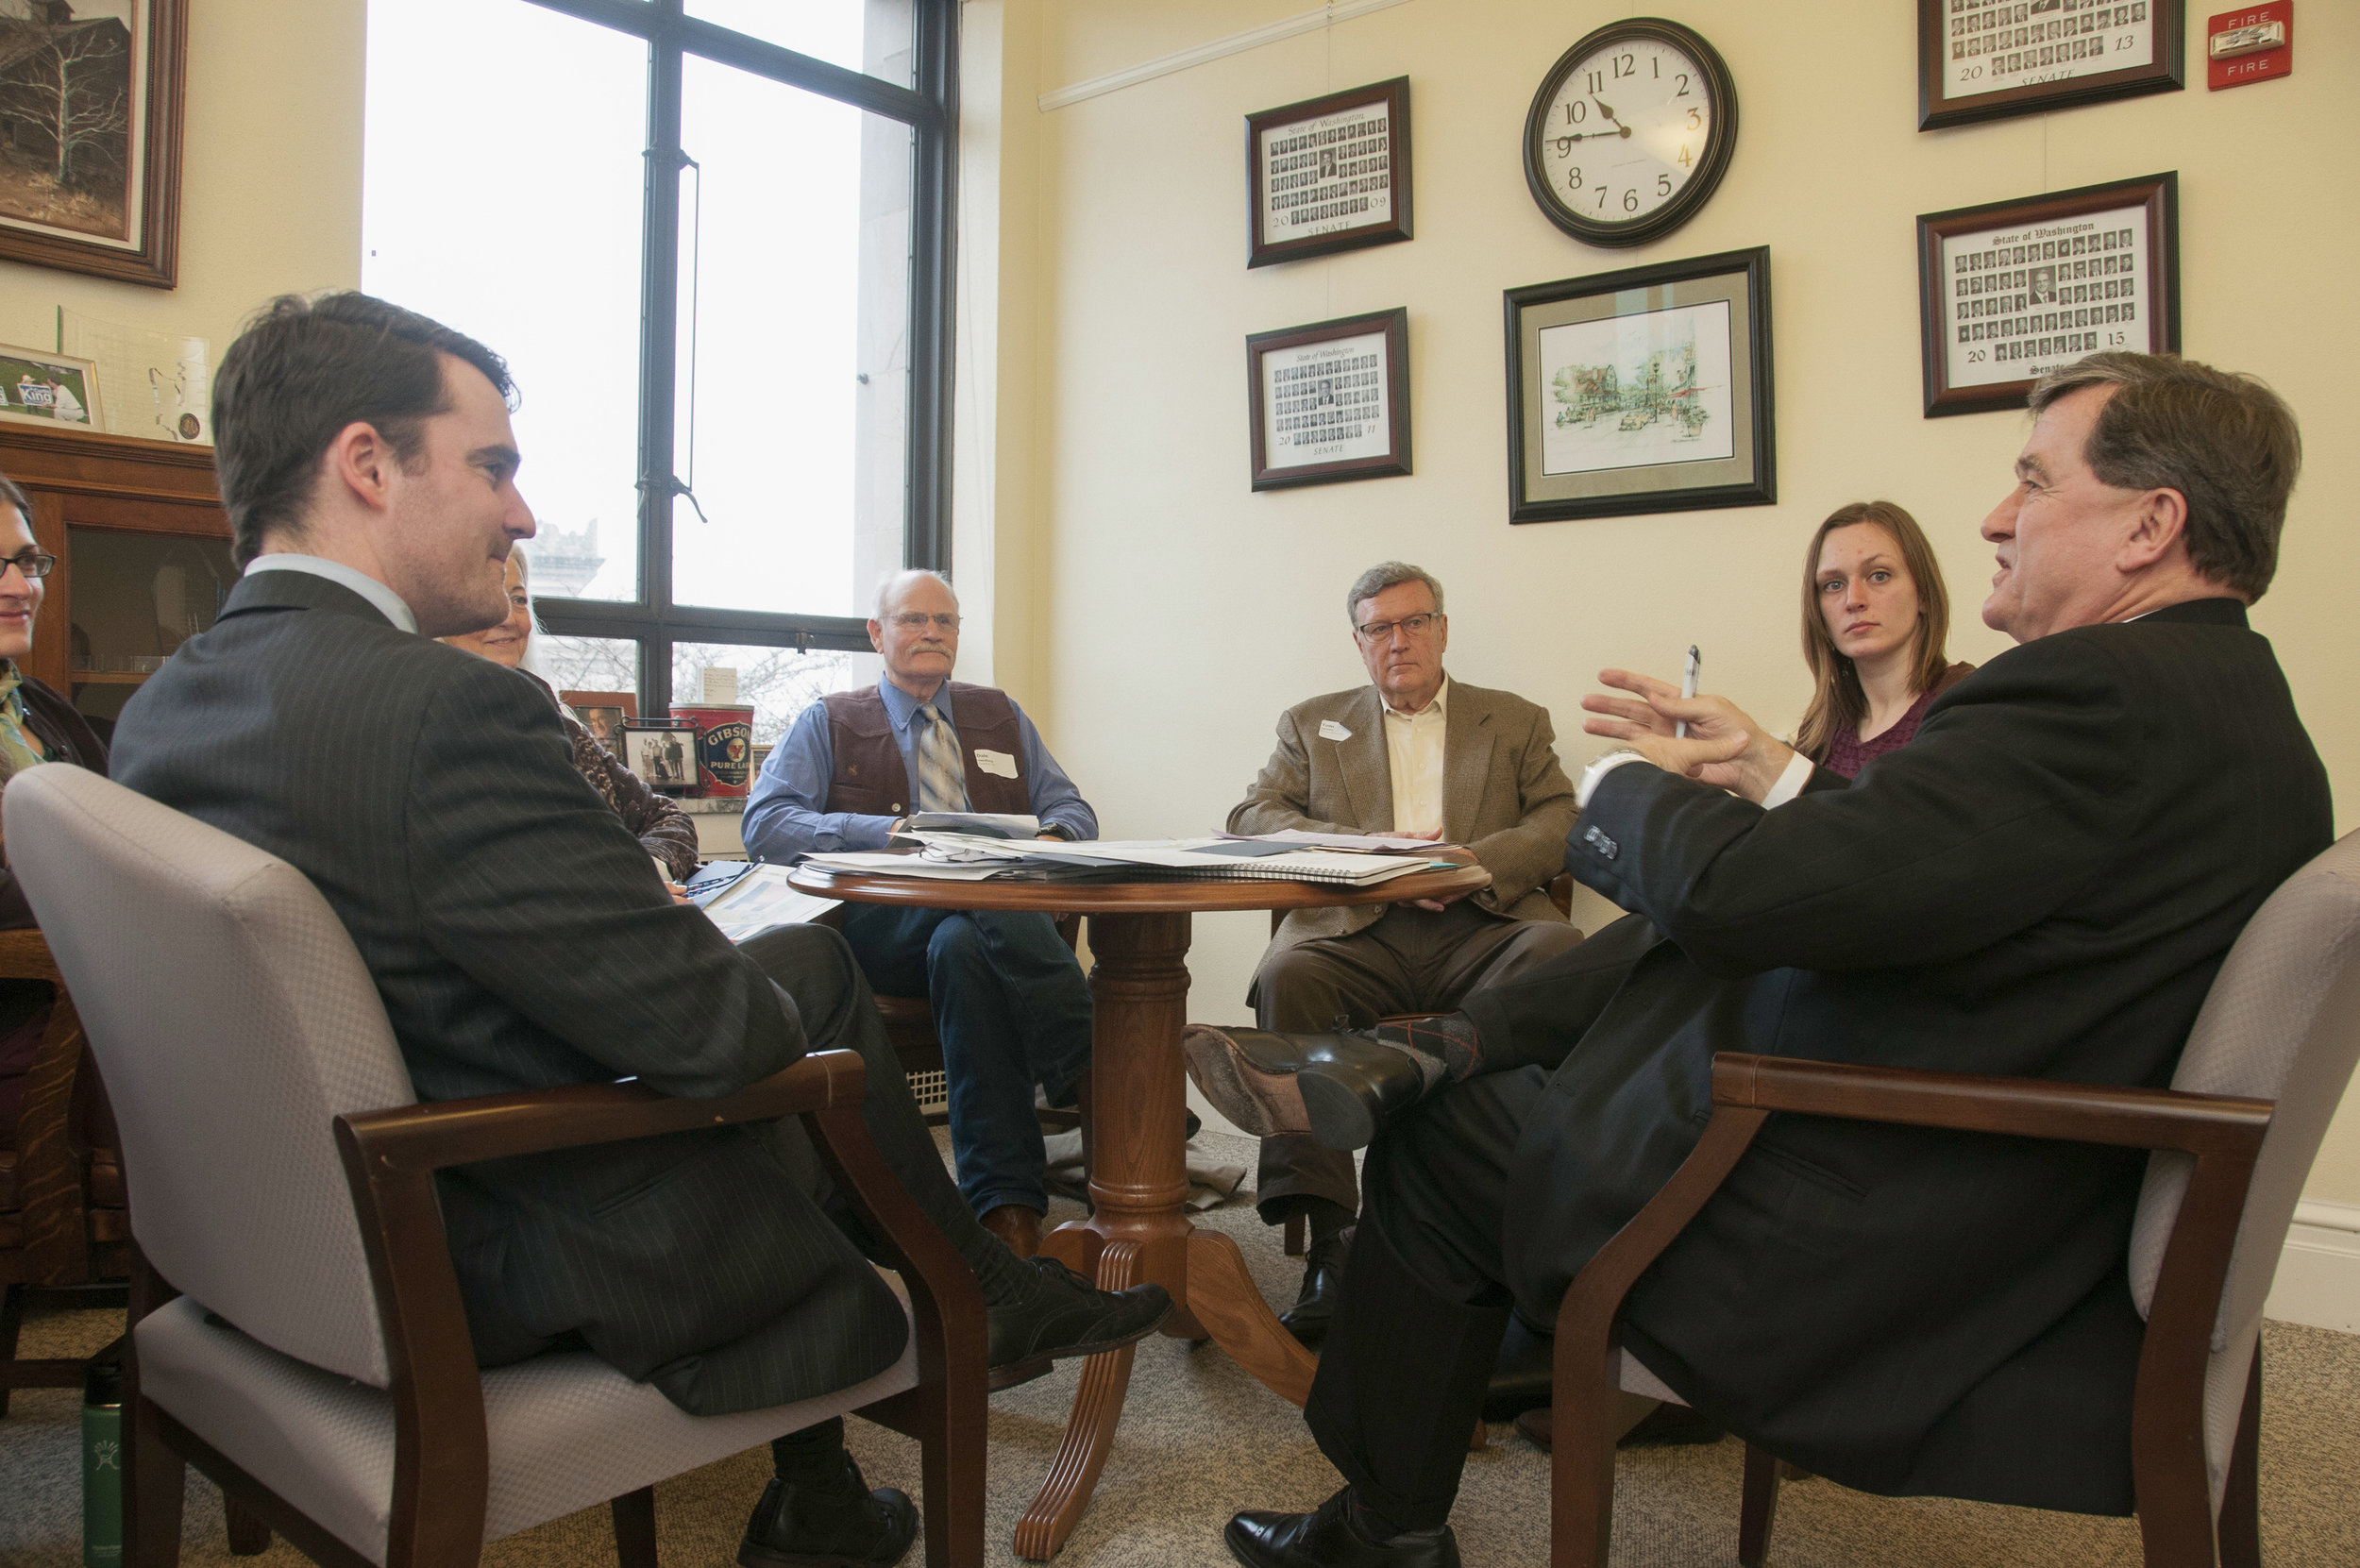 Meeting in Sen. Curtis King's office in Olympia. Tom Bugert, TNC, left, and the Senator in the foreground, with Dale Swedberg, Tonasket; Tom Lannen, Skamania County; and Nicole Budine, Gifford Pinchot Collaborative, facing.Photo © Hannah Letinich / TNC